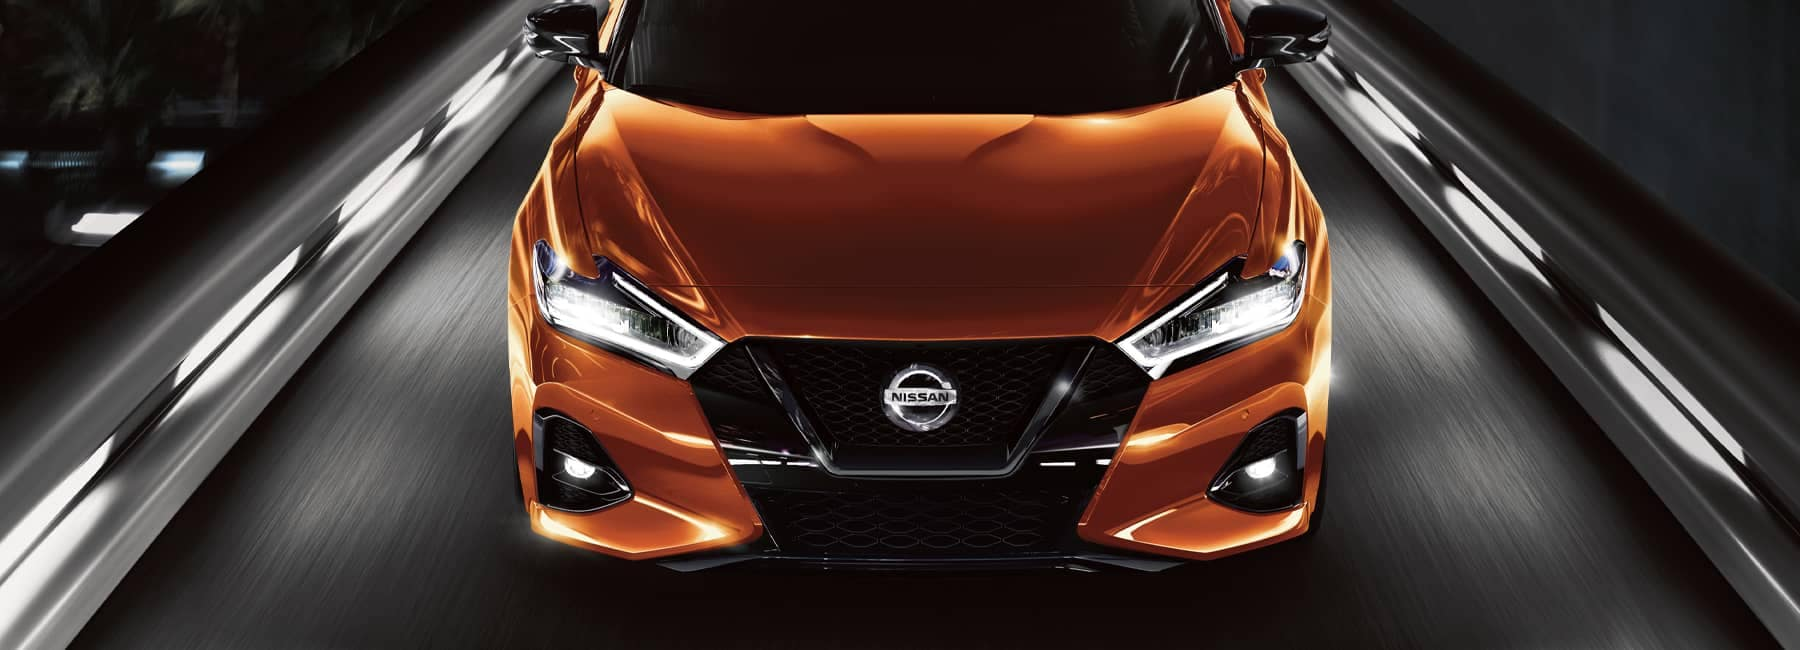 Front of Nissan Maxima